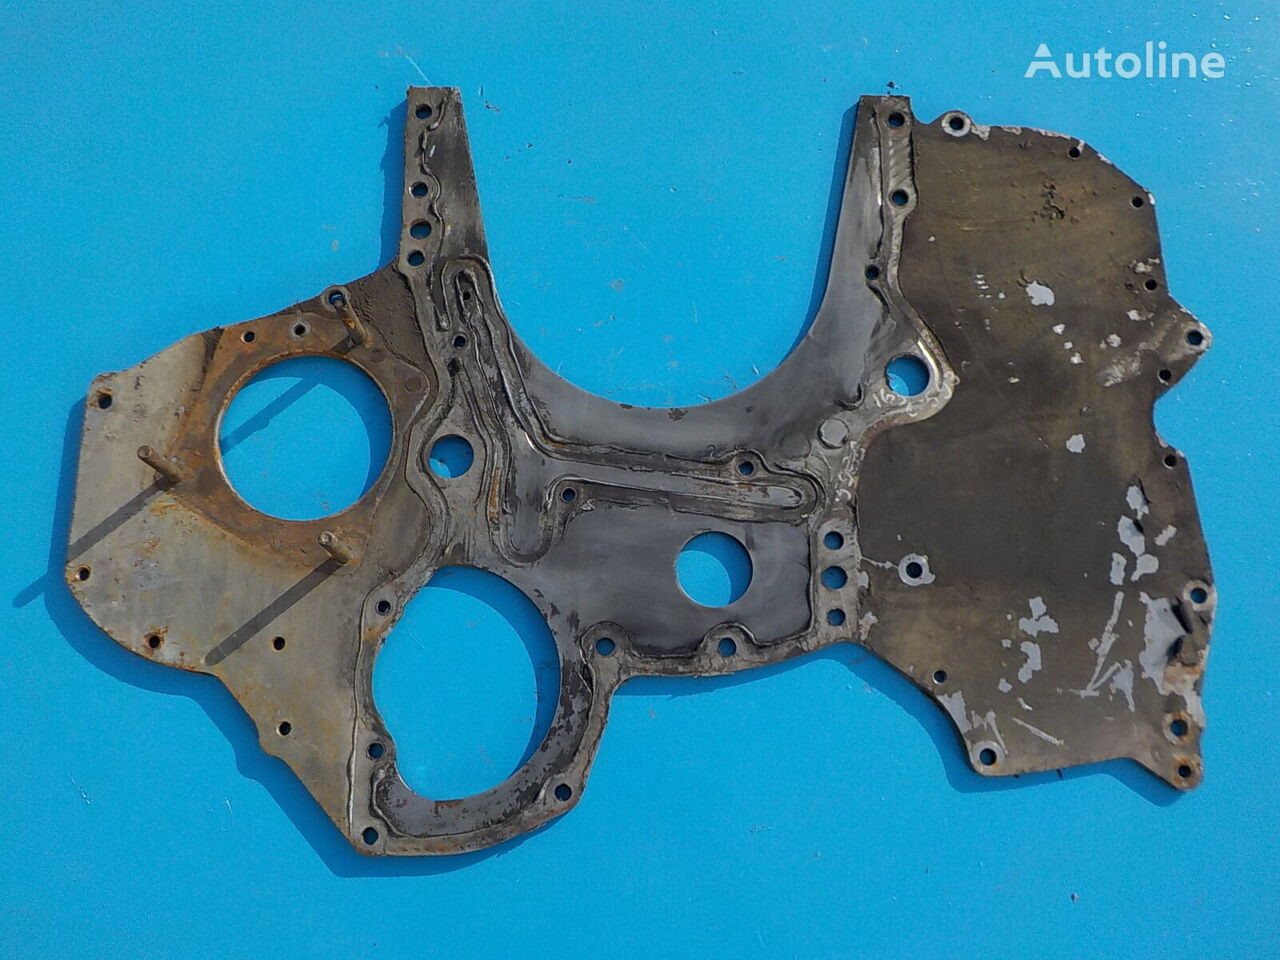 Plita GRM spare parts for SCANIA truck